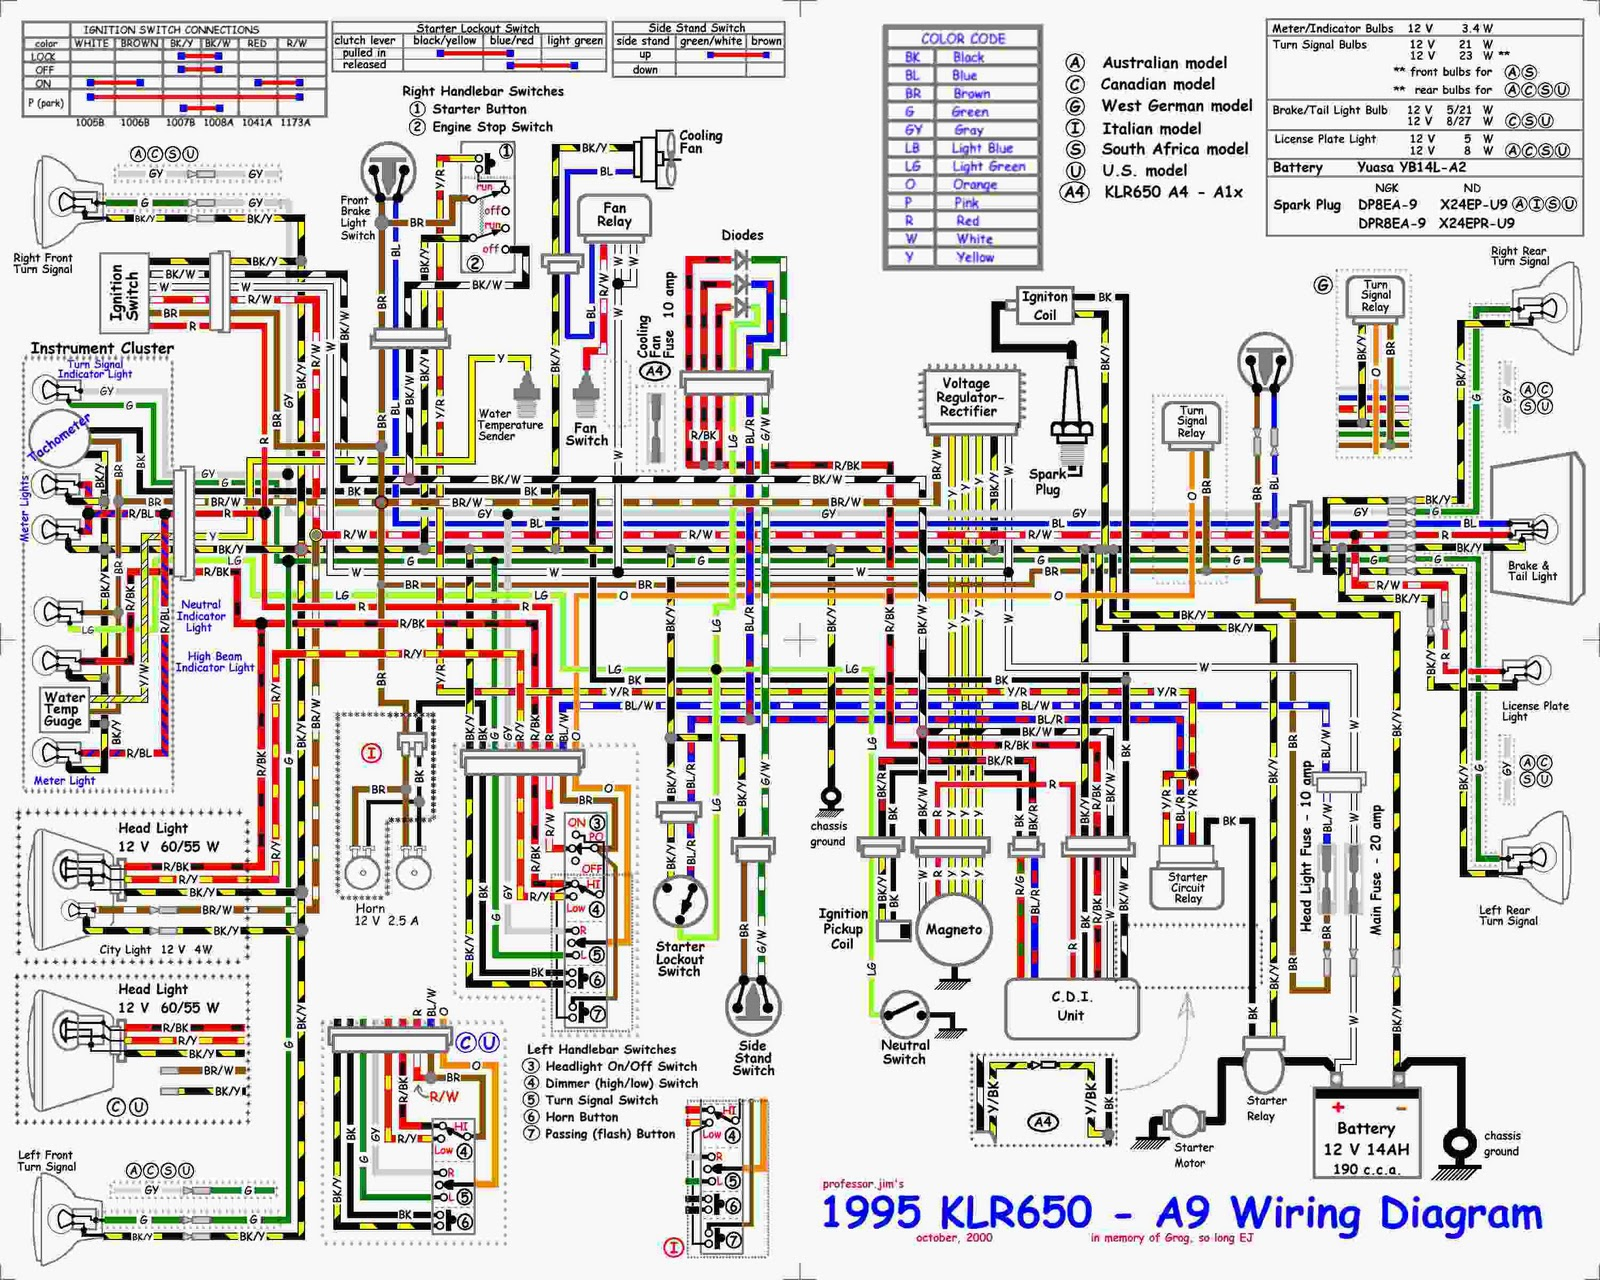 1995 kawasaki klr650 wiring diagram all about wiring. Black Bedroom Furniture Sets. Home Design Ideas